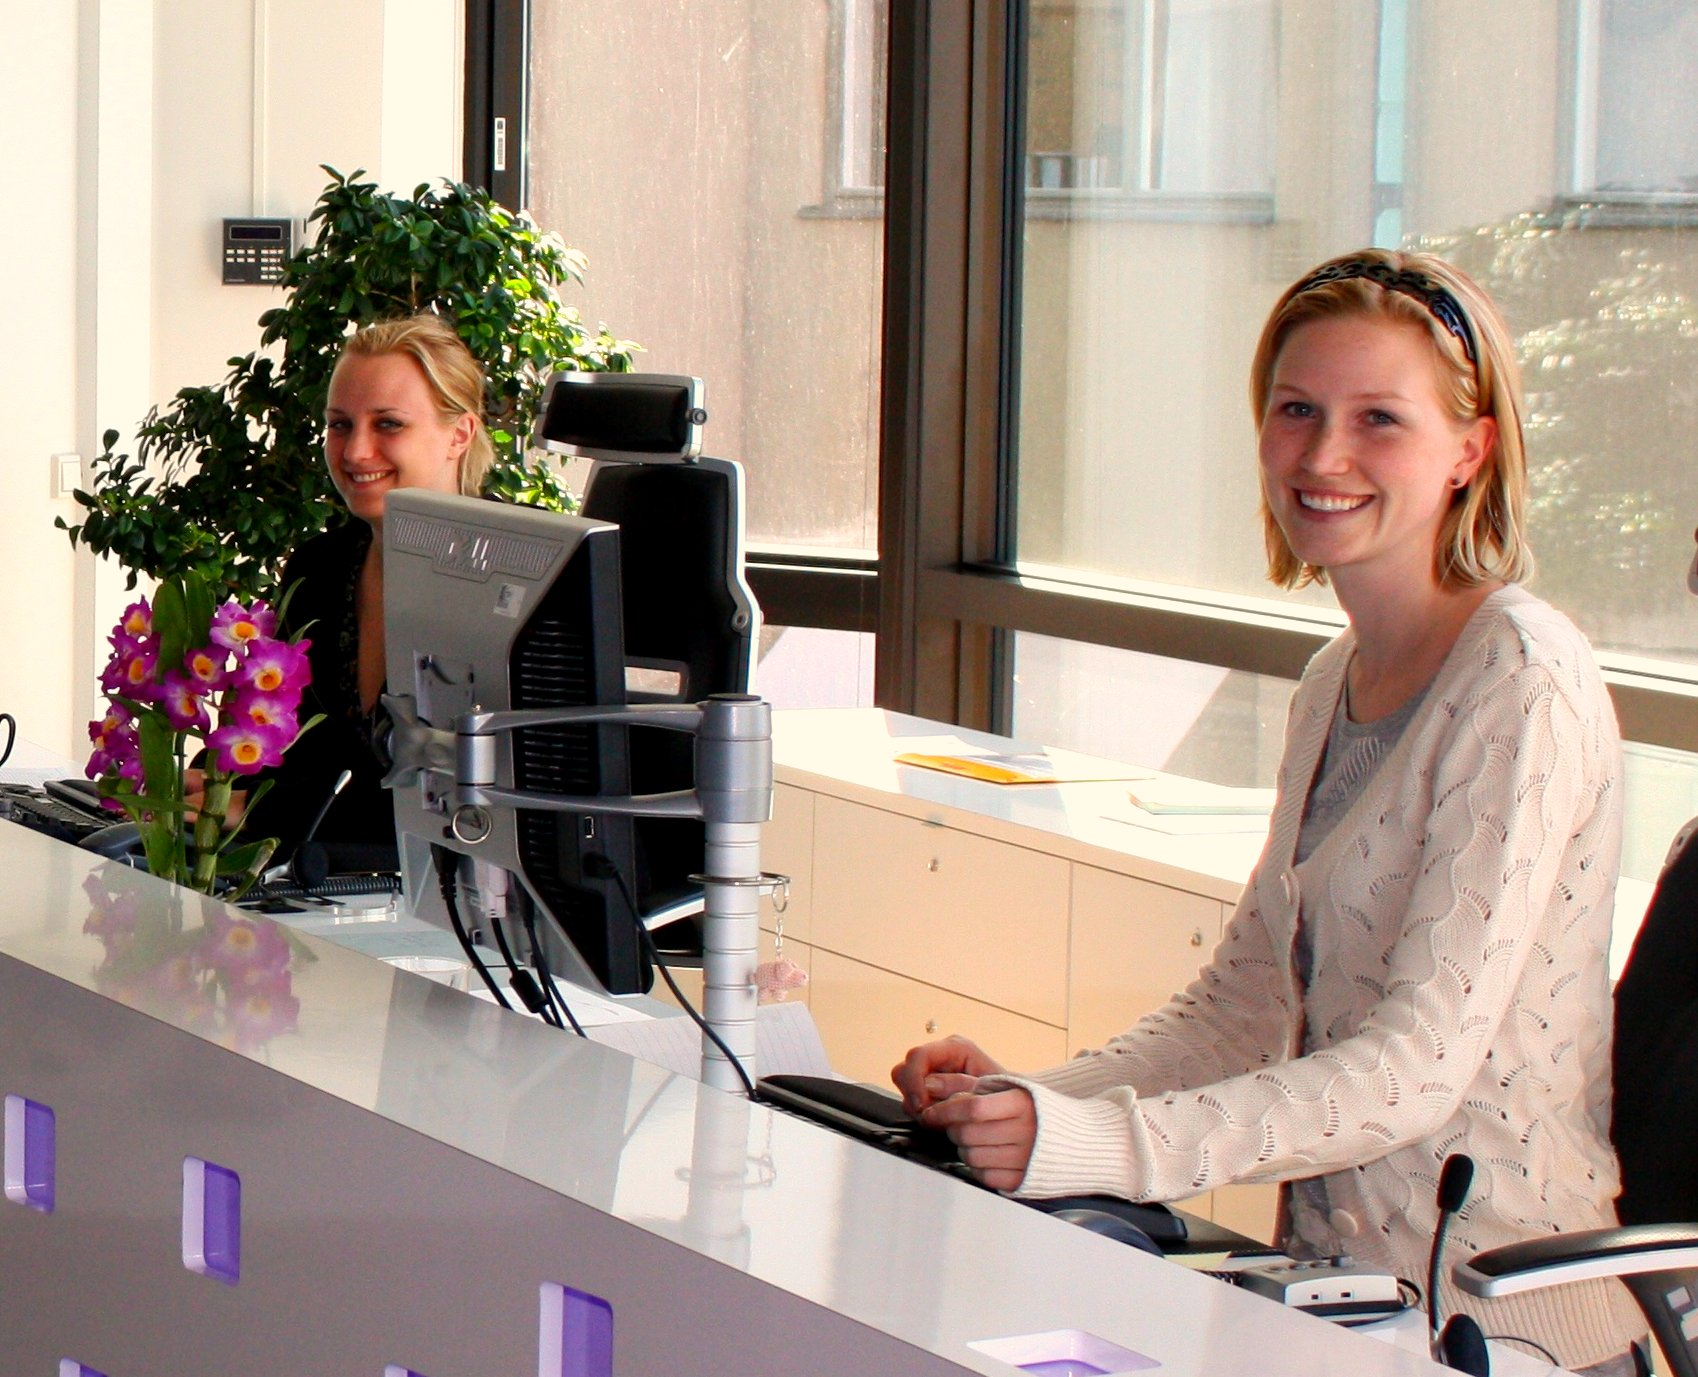 1. Receptionists